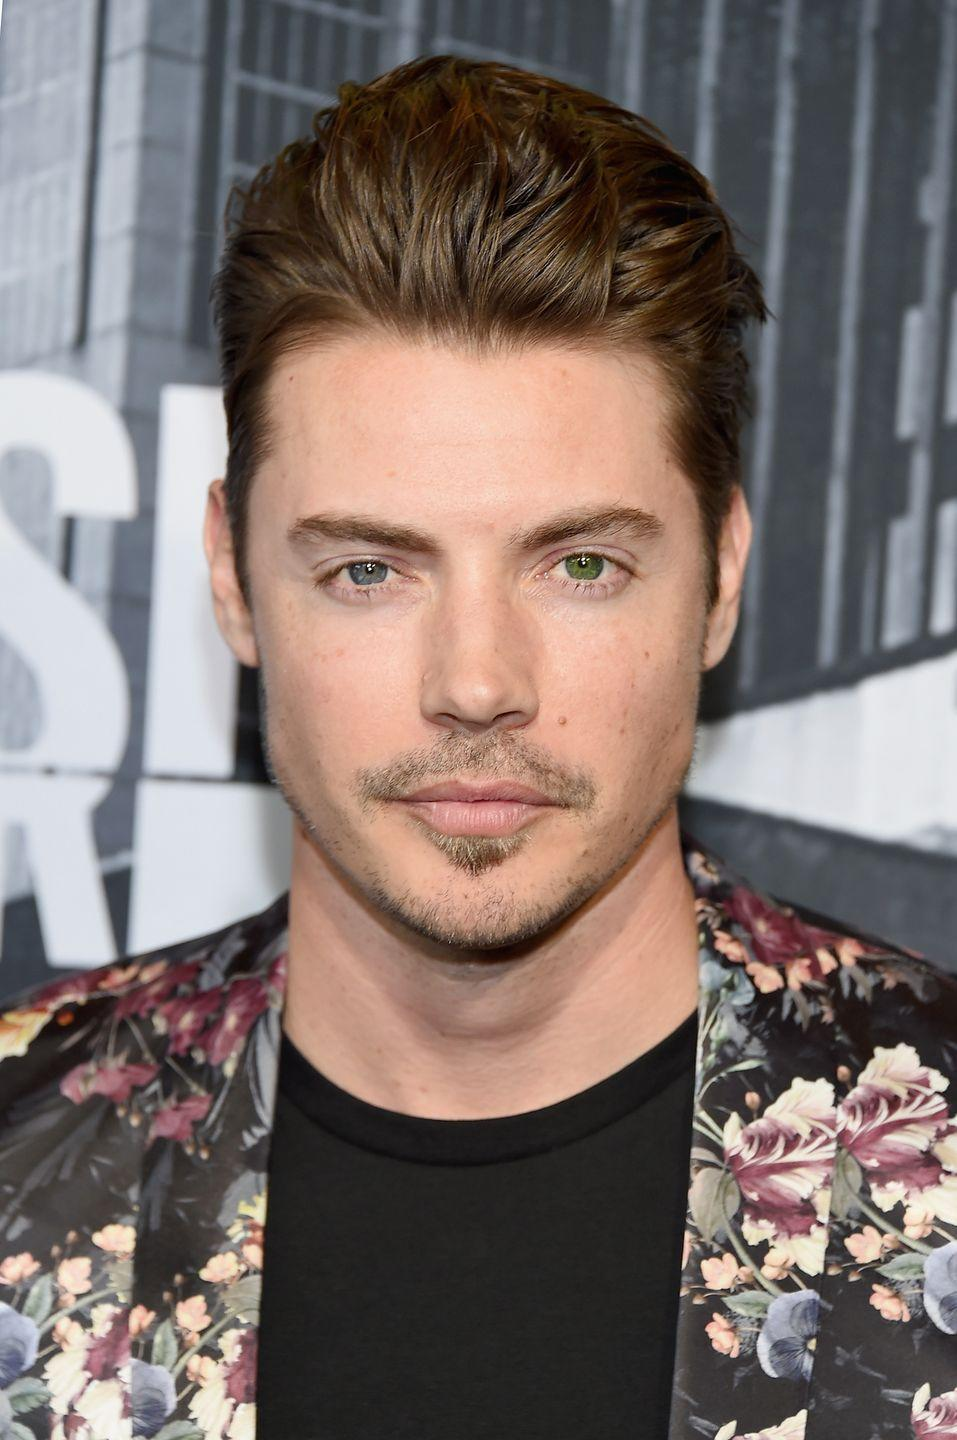 <p>The handsome actor has two contrasting eye colors. But since they're both in the lighter range, you may not notice immediately that one is a medium blue, and the other a rich green.</p>